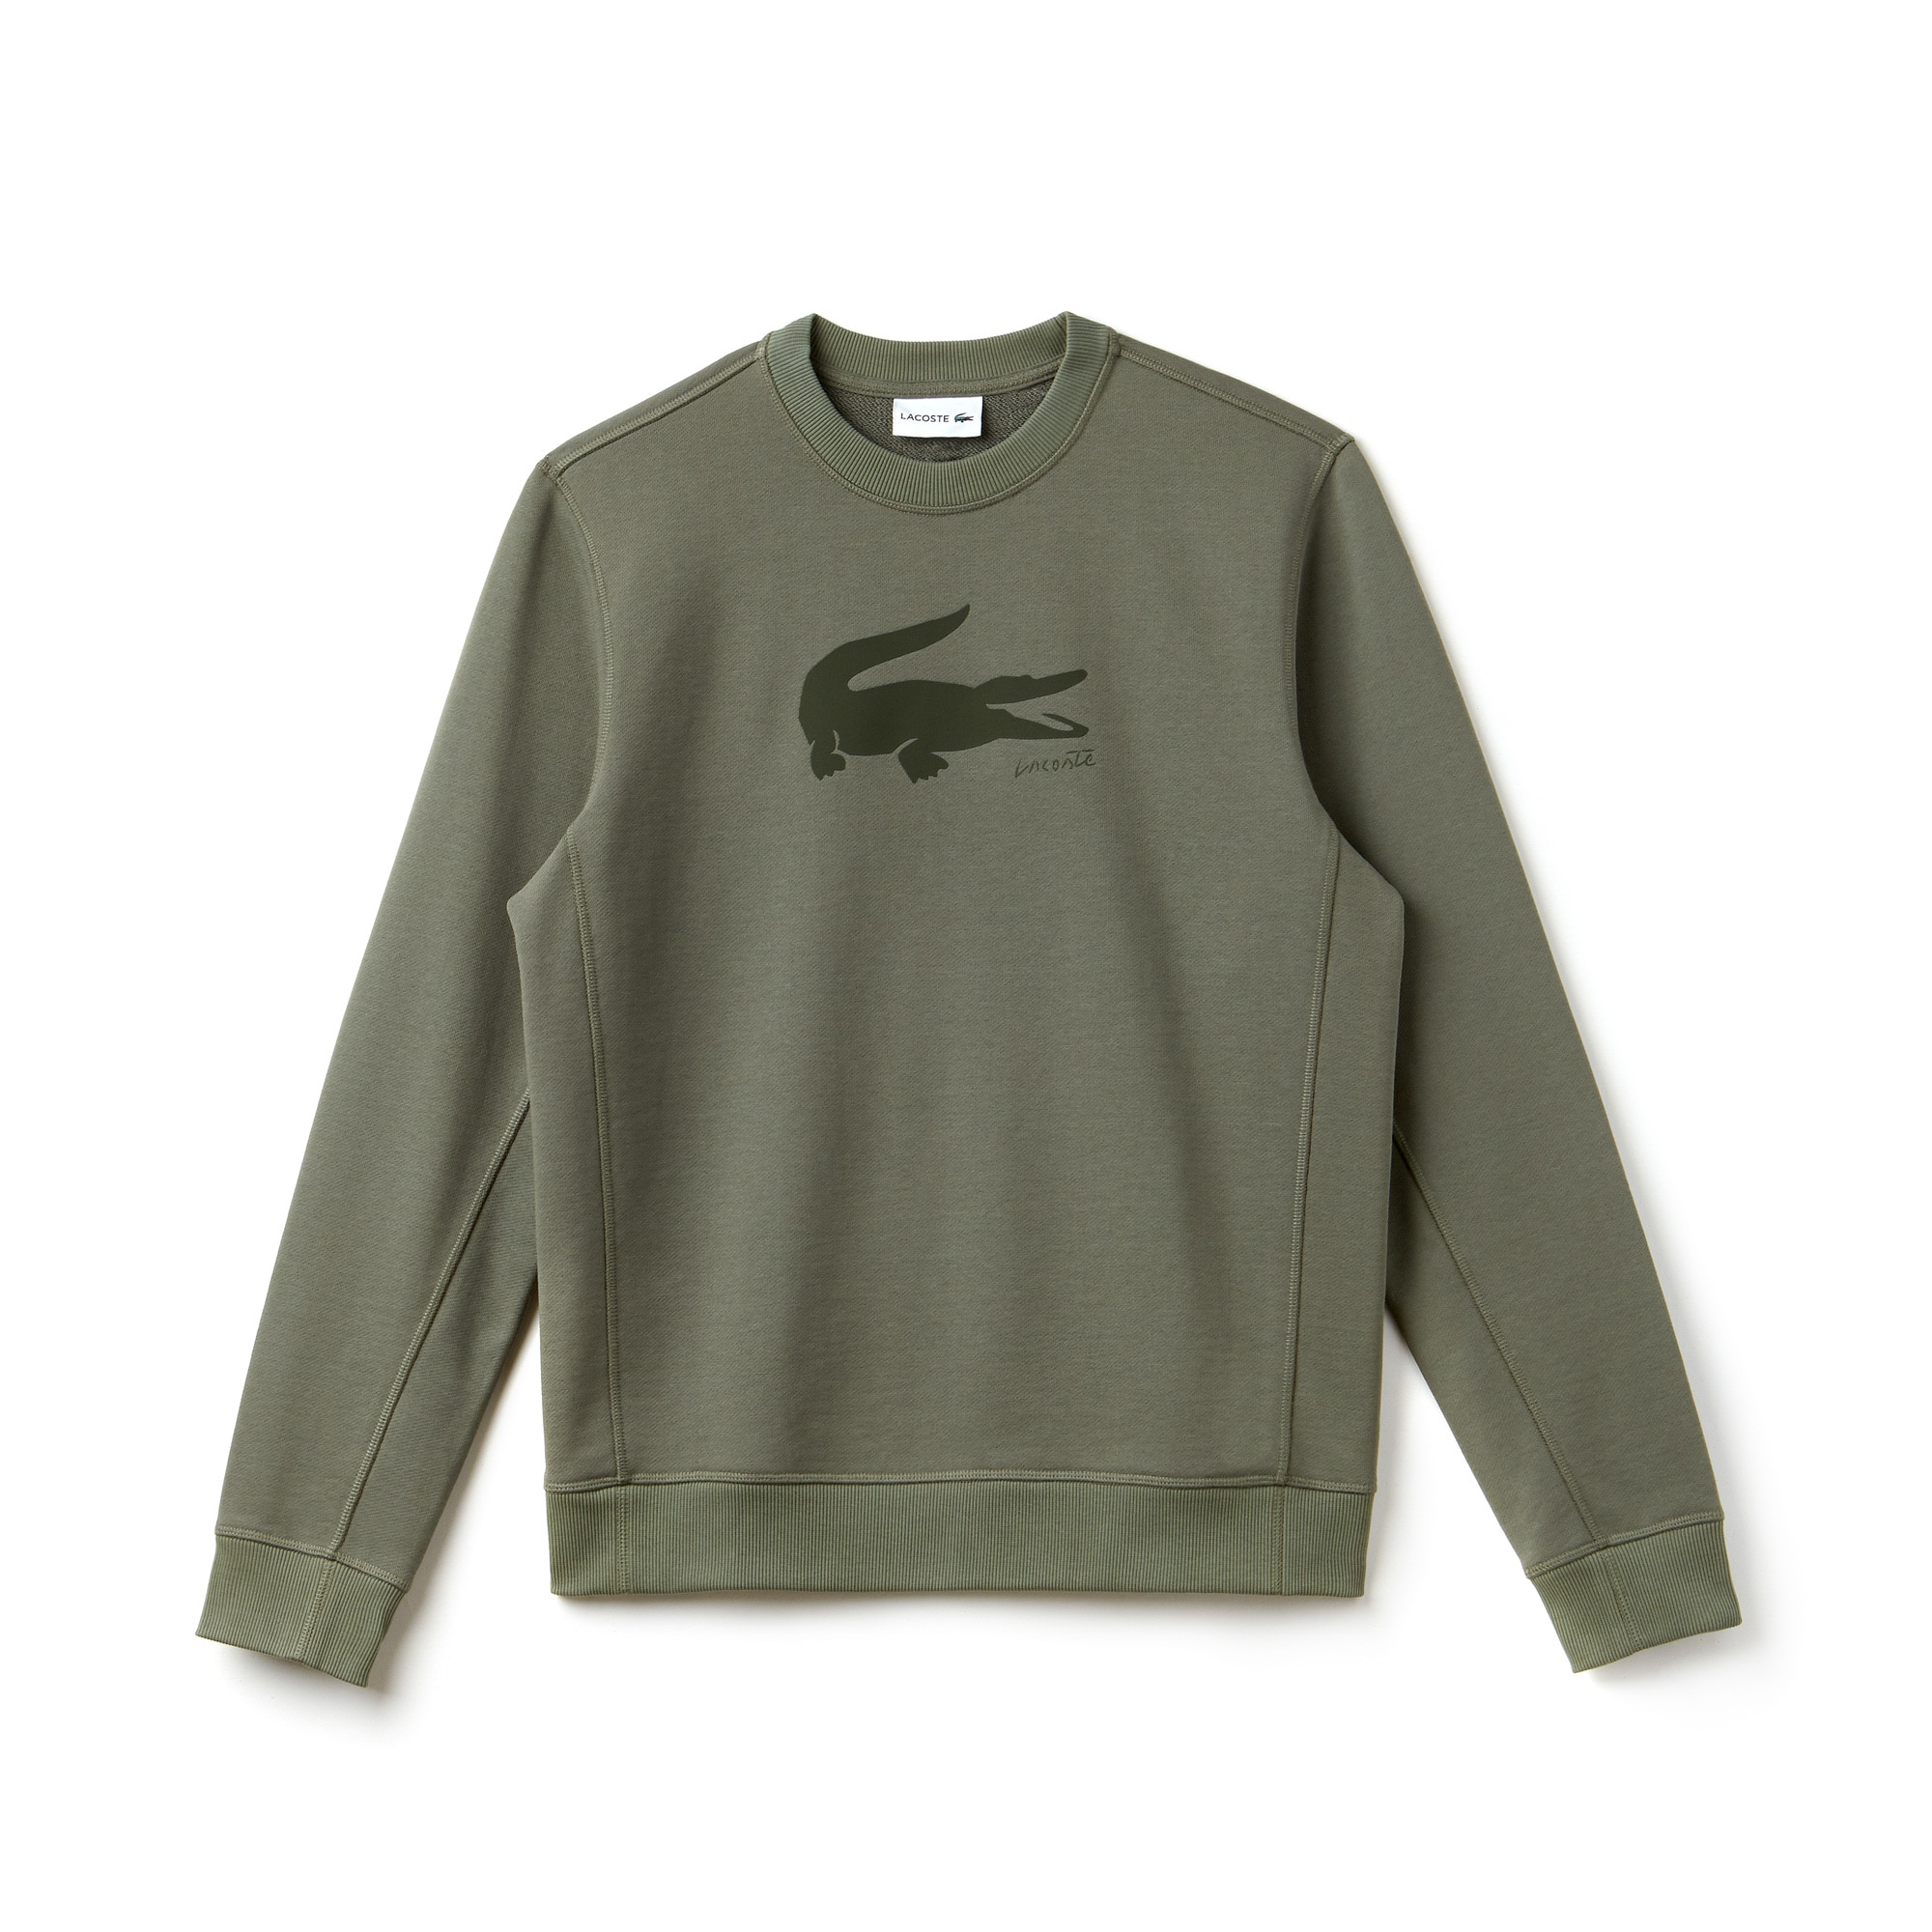 Men's Crew Neck Crocodile Print Fleece Sweatshirt